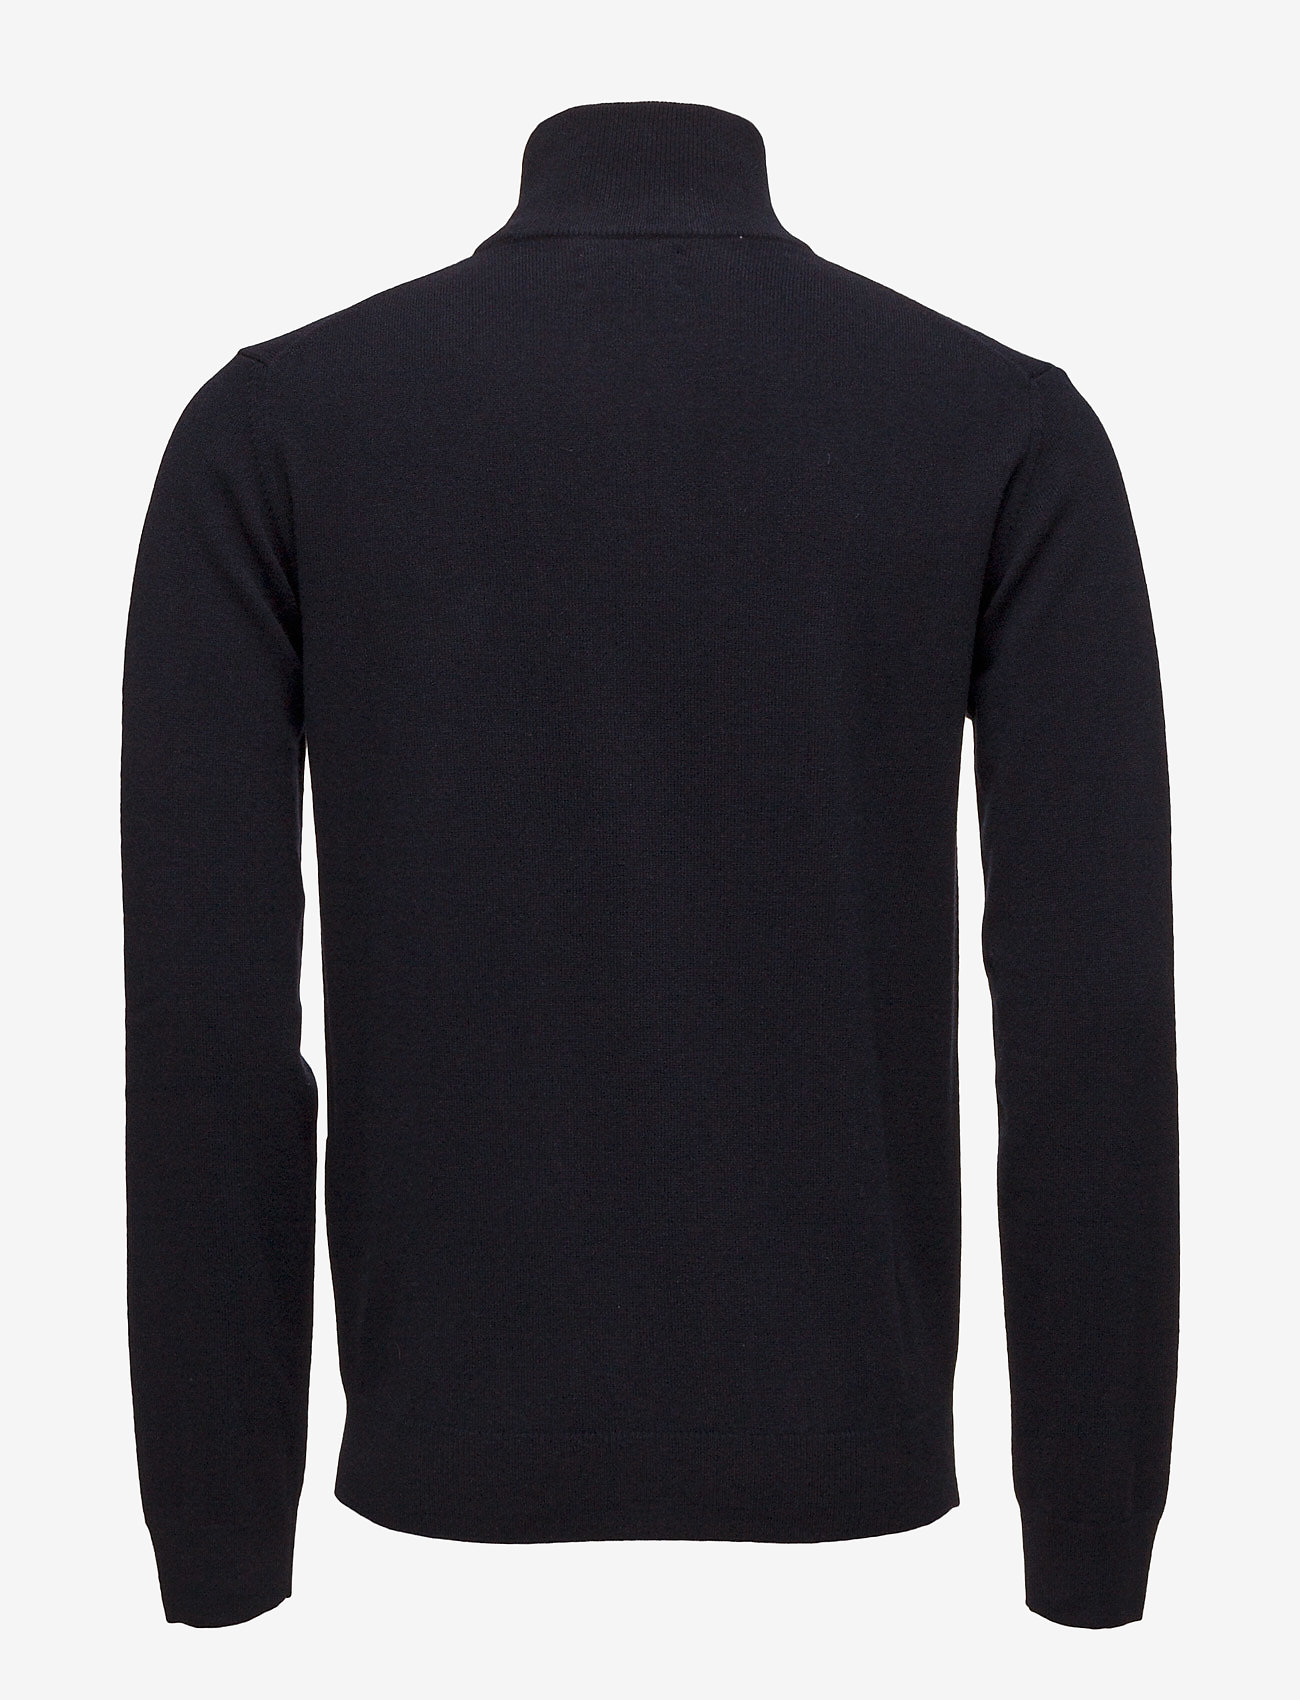 GANT - SUPERFINE LAMBSWOOL HALF ZIP - half zip jumpers - marine - 1